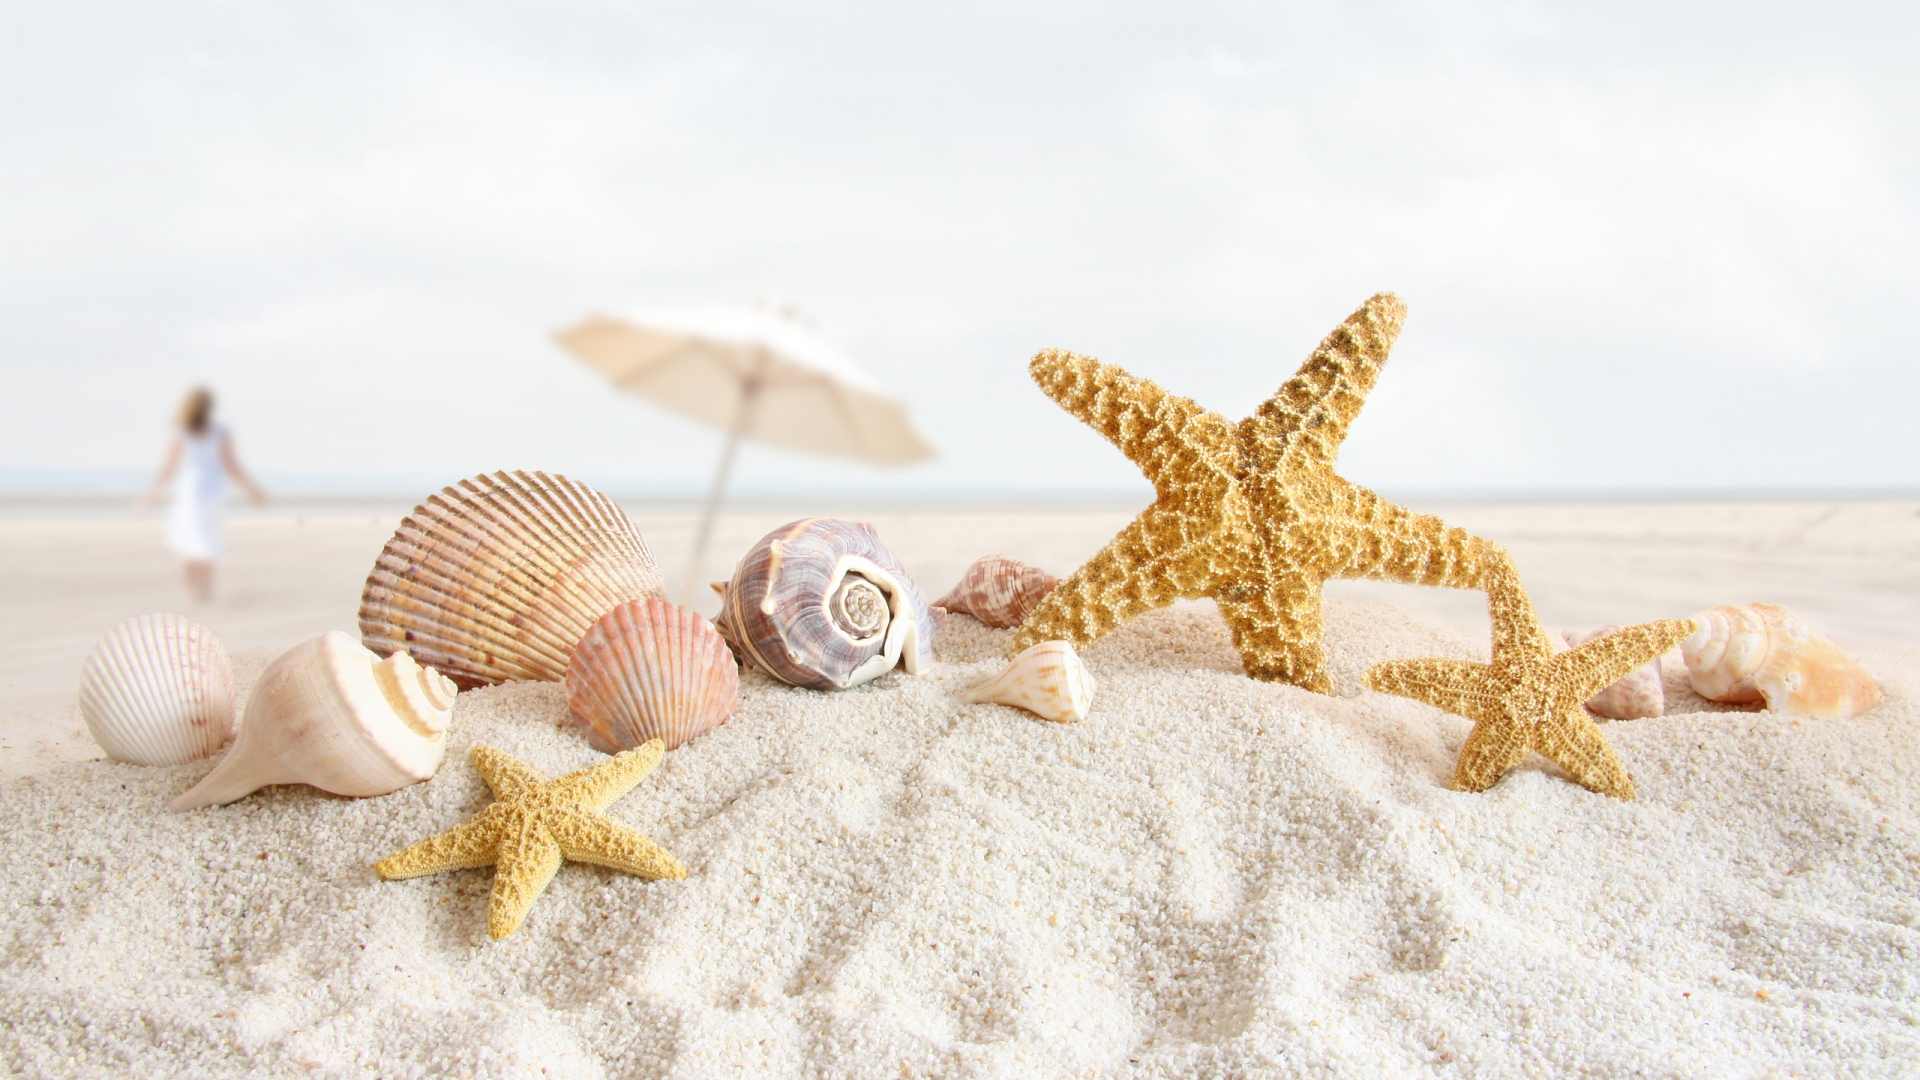 Summer Nature Pages Seashells Starfish wallpapers HD   271736 1920x1080